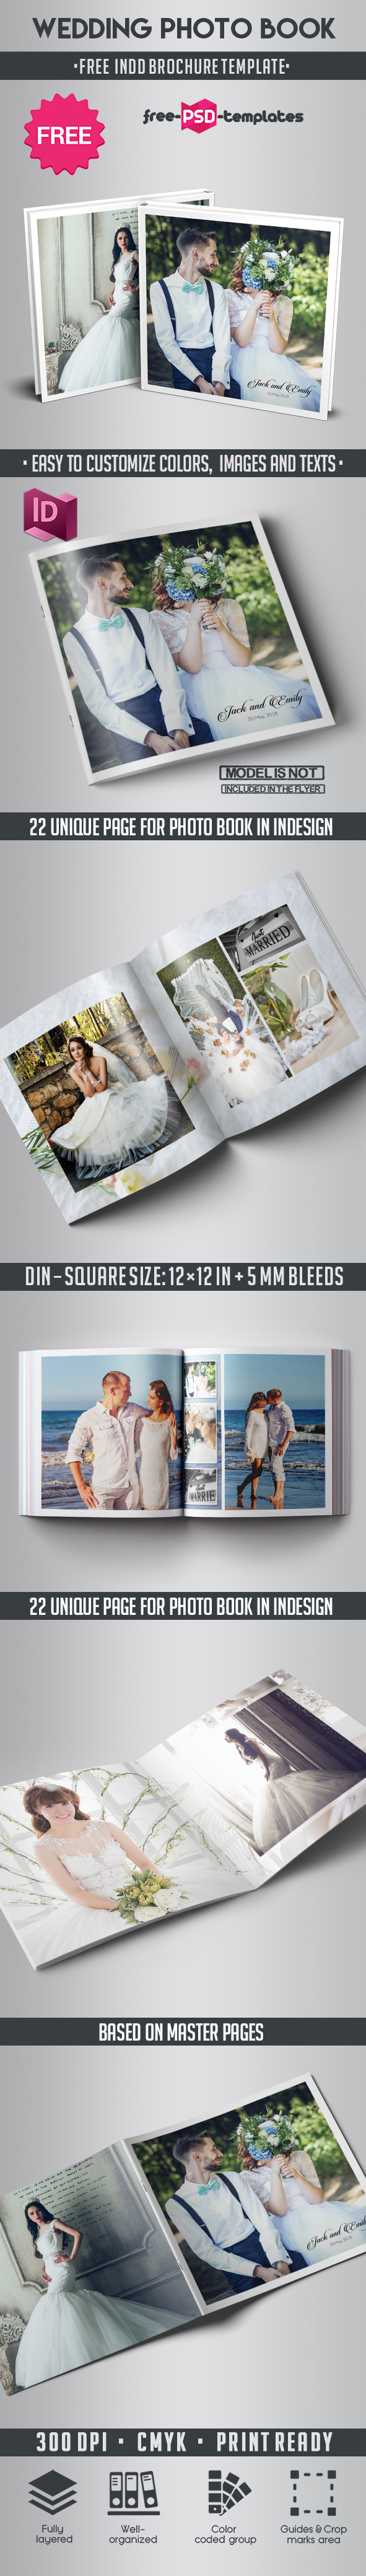 Free Wedding Photo Book Indd Template | Free PSD Templates